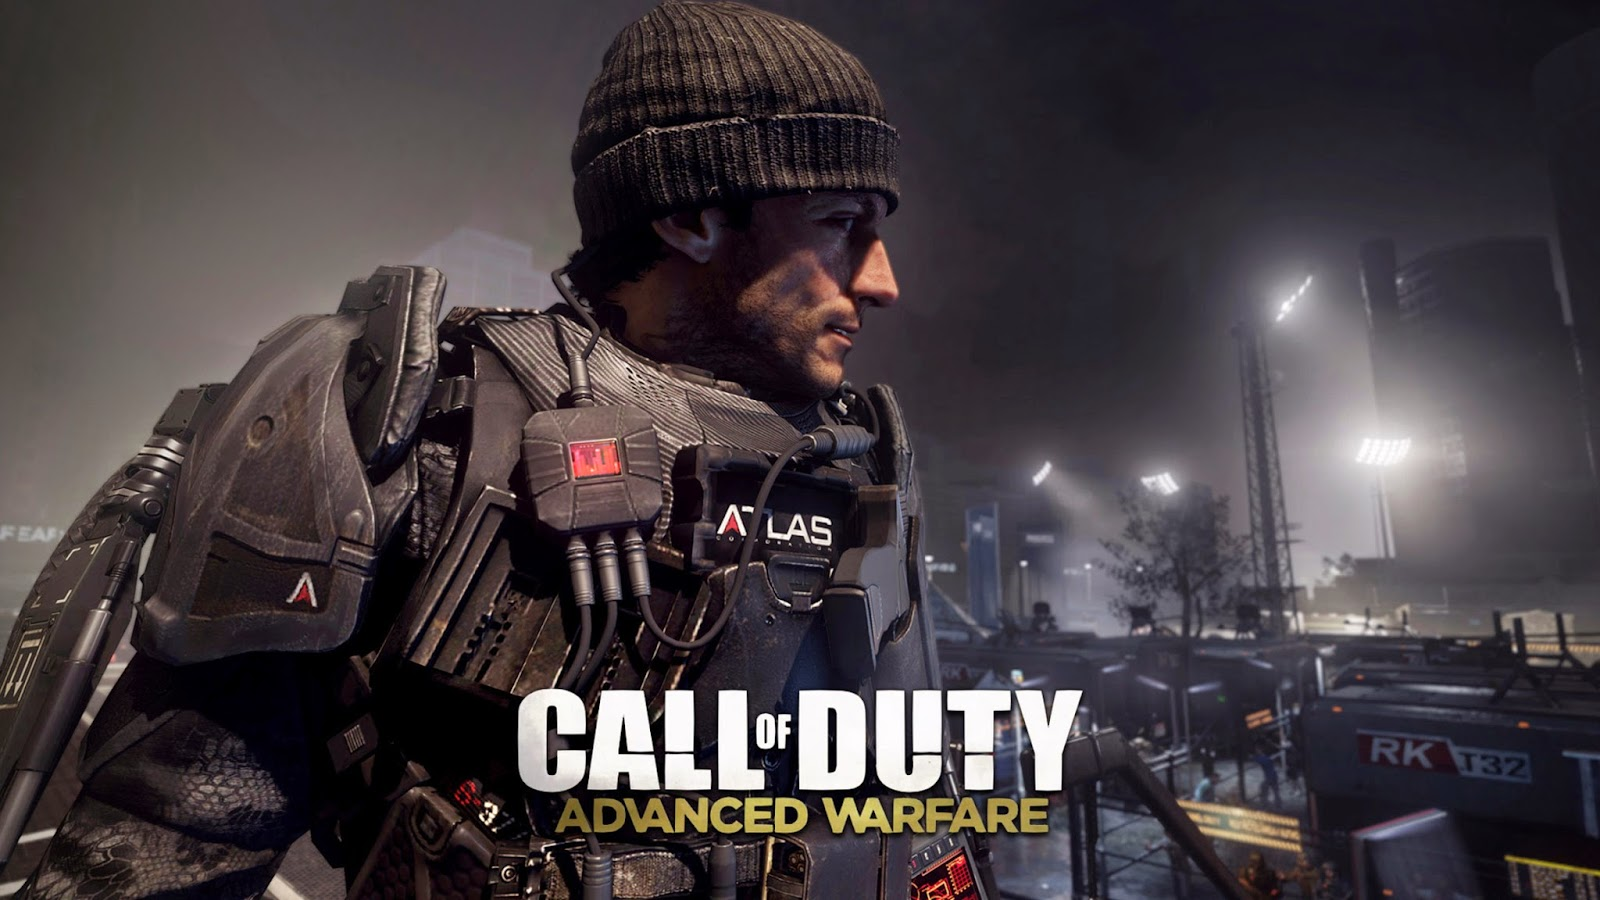 Call of duty advanced warfare Gideon wallpaper